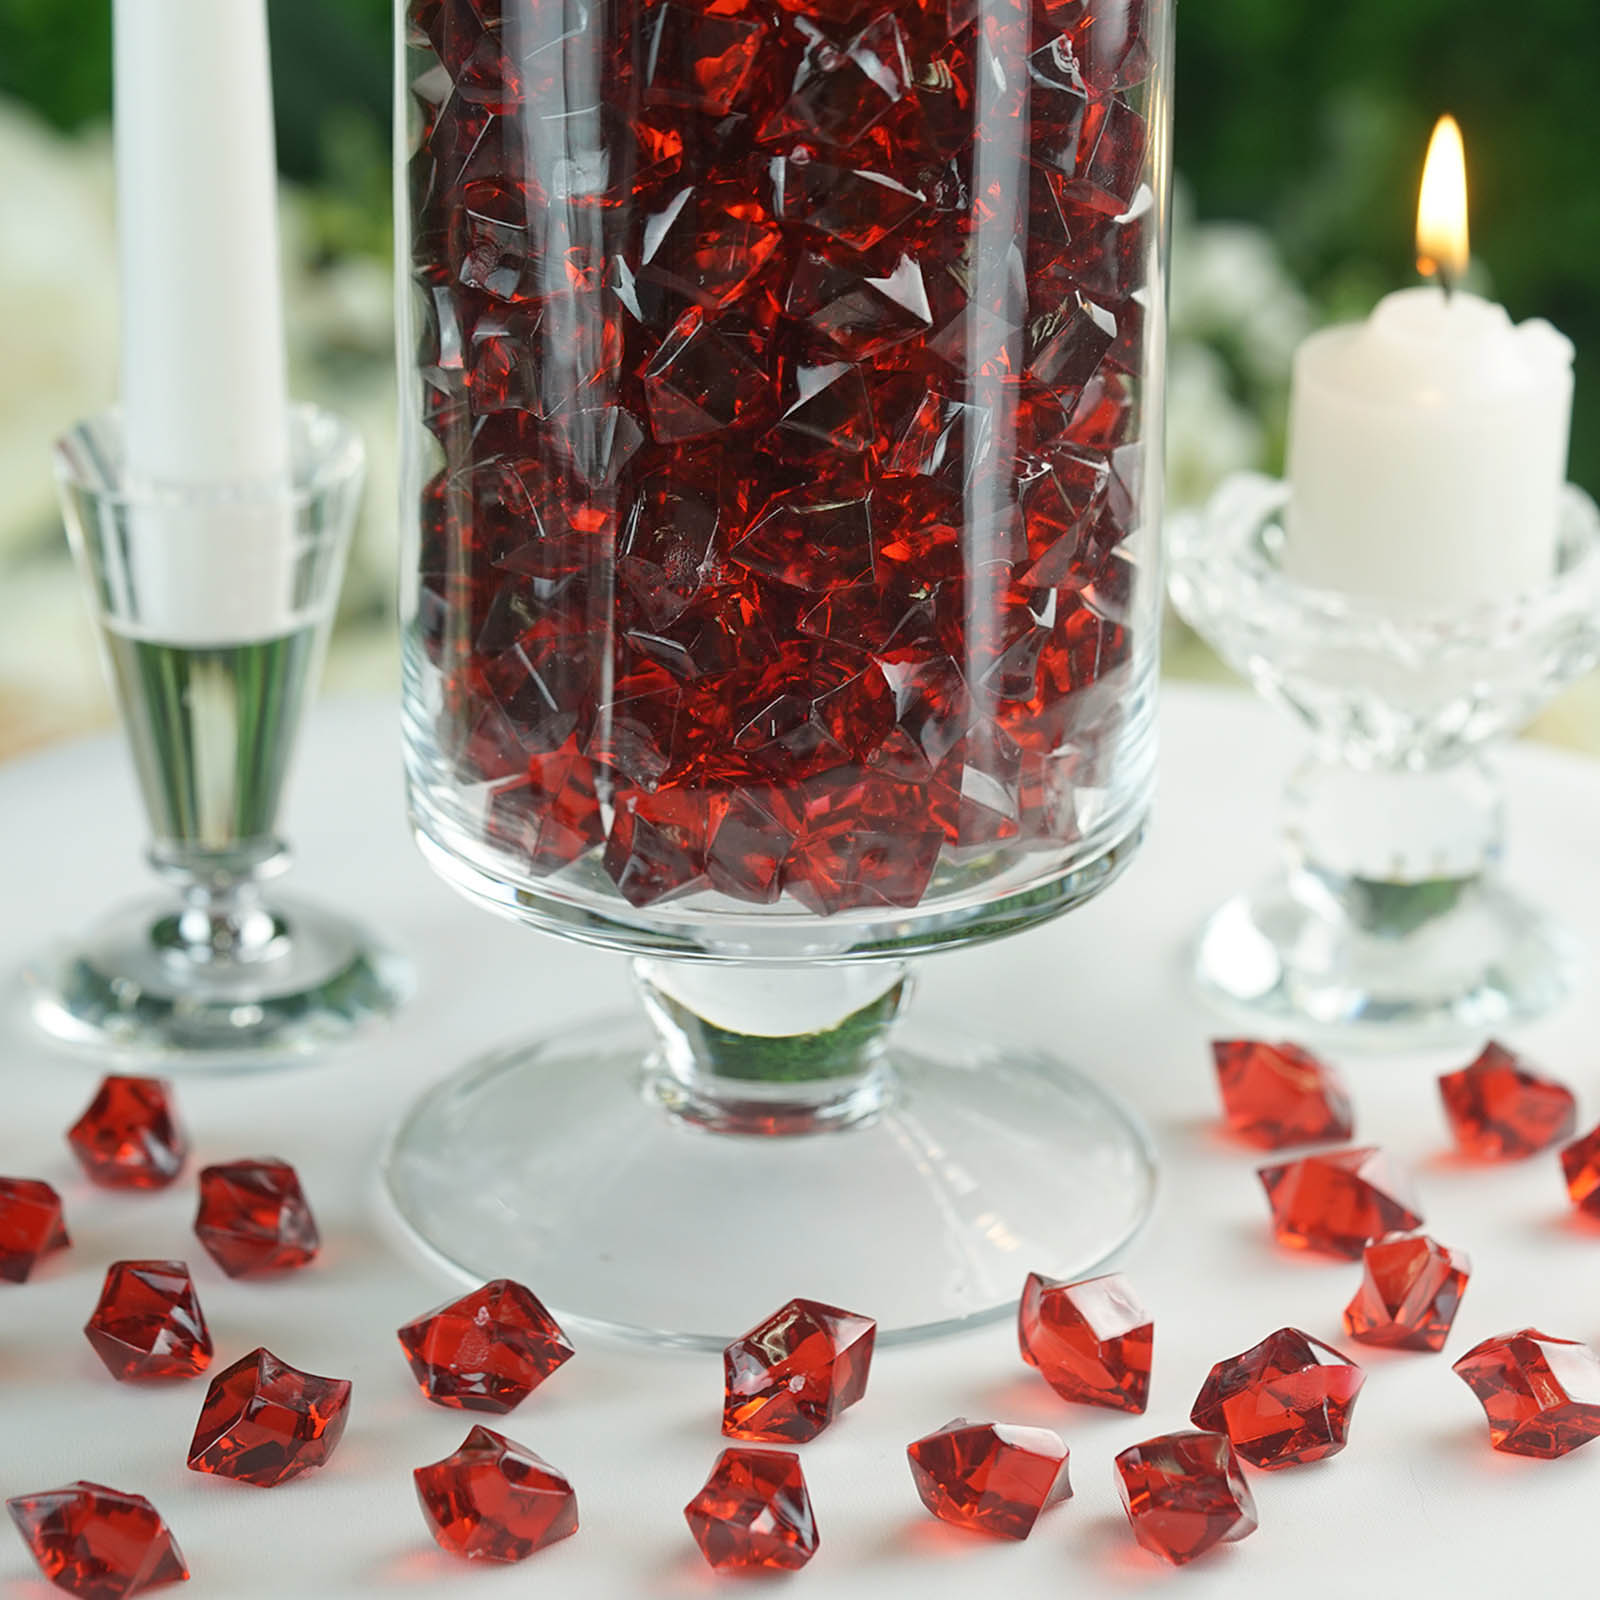 300-Acrylic-Ice-CRYSTAL-LIKE-Pieces-Wedding-Centerpieces-Decorations-Supplies thumbnail 13